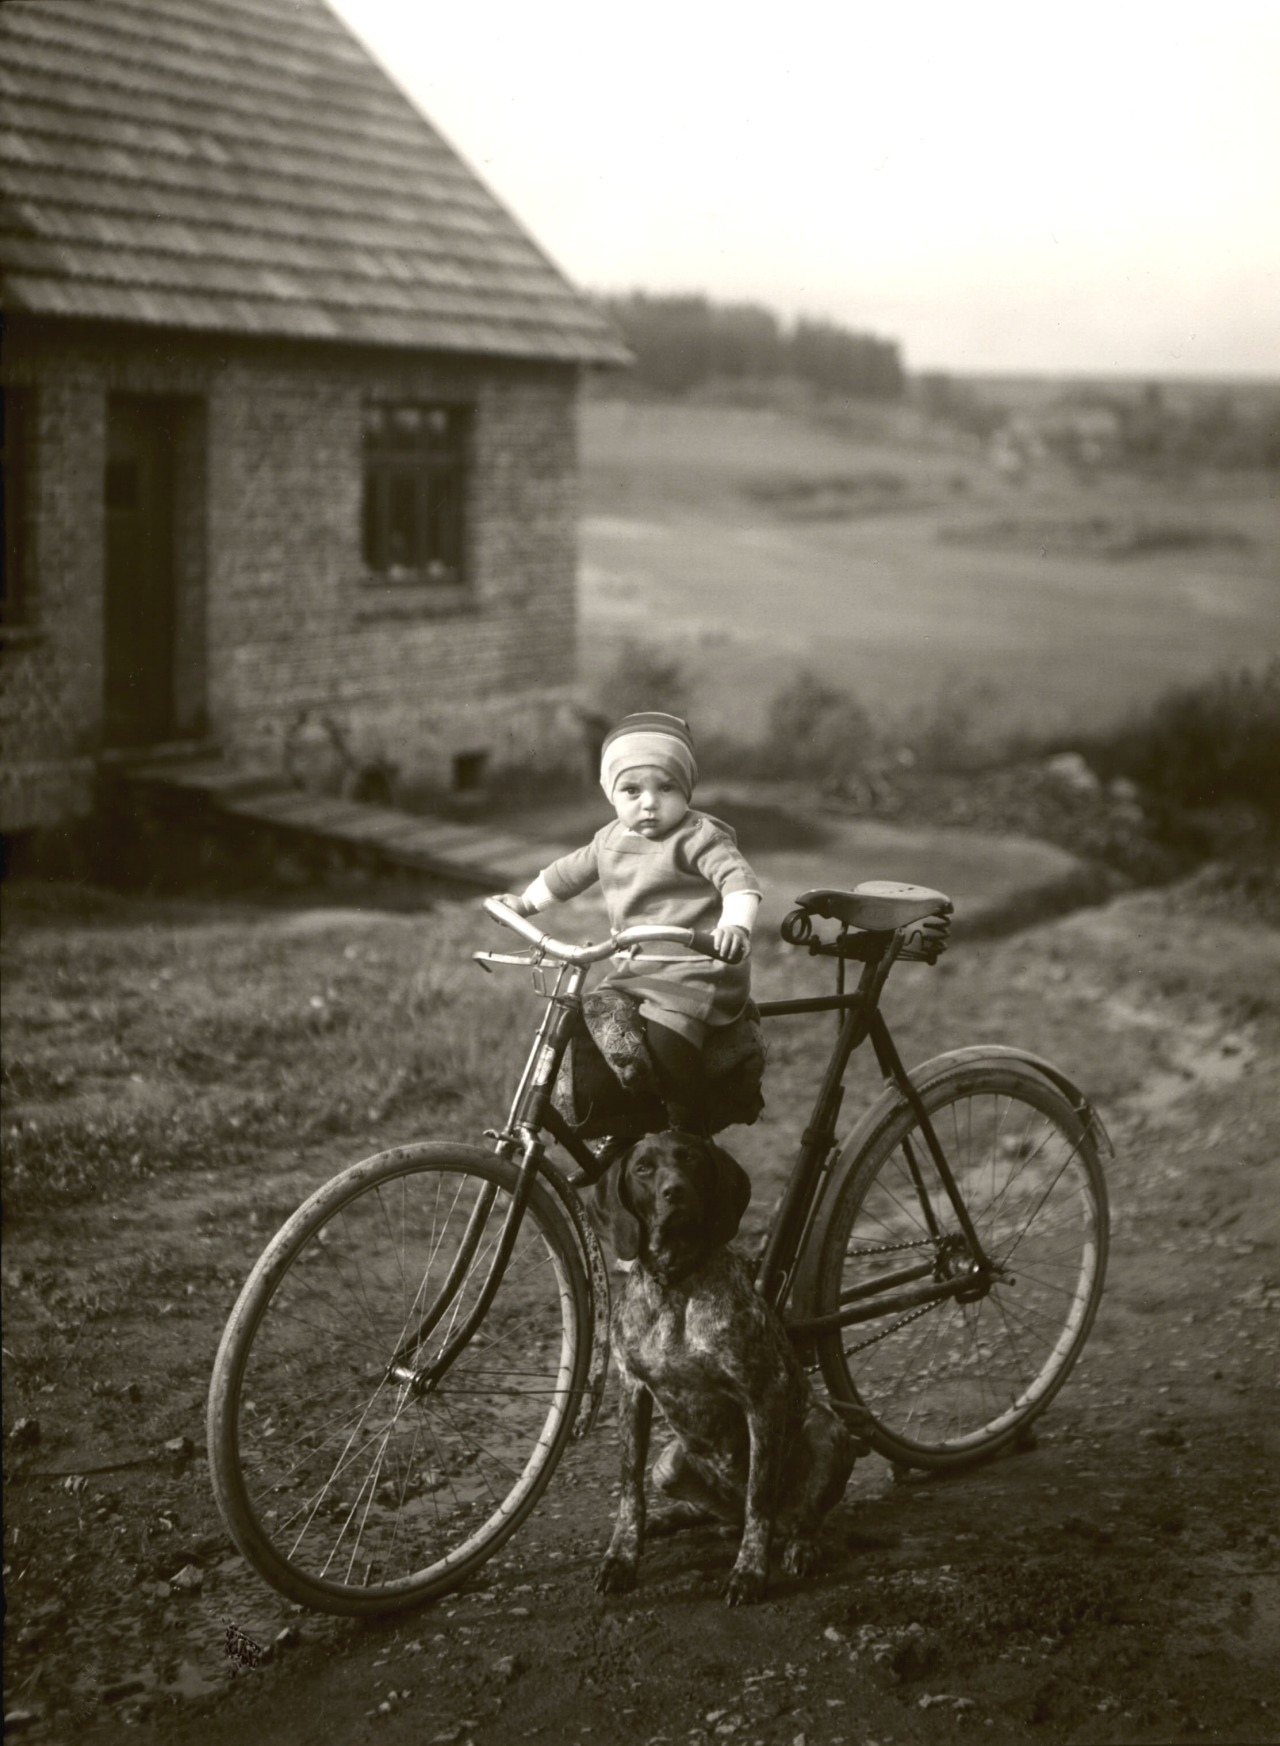 houkgallery :     August Sander (German, 1876-1964) Forester's Child, Westerwald, 1931